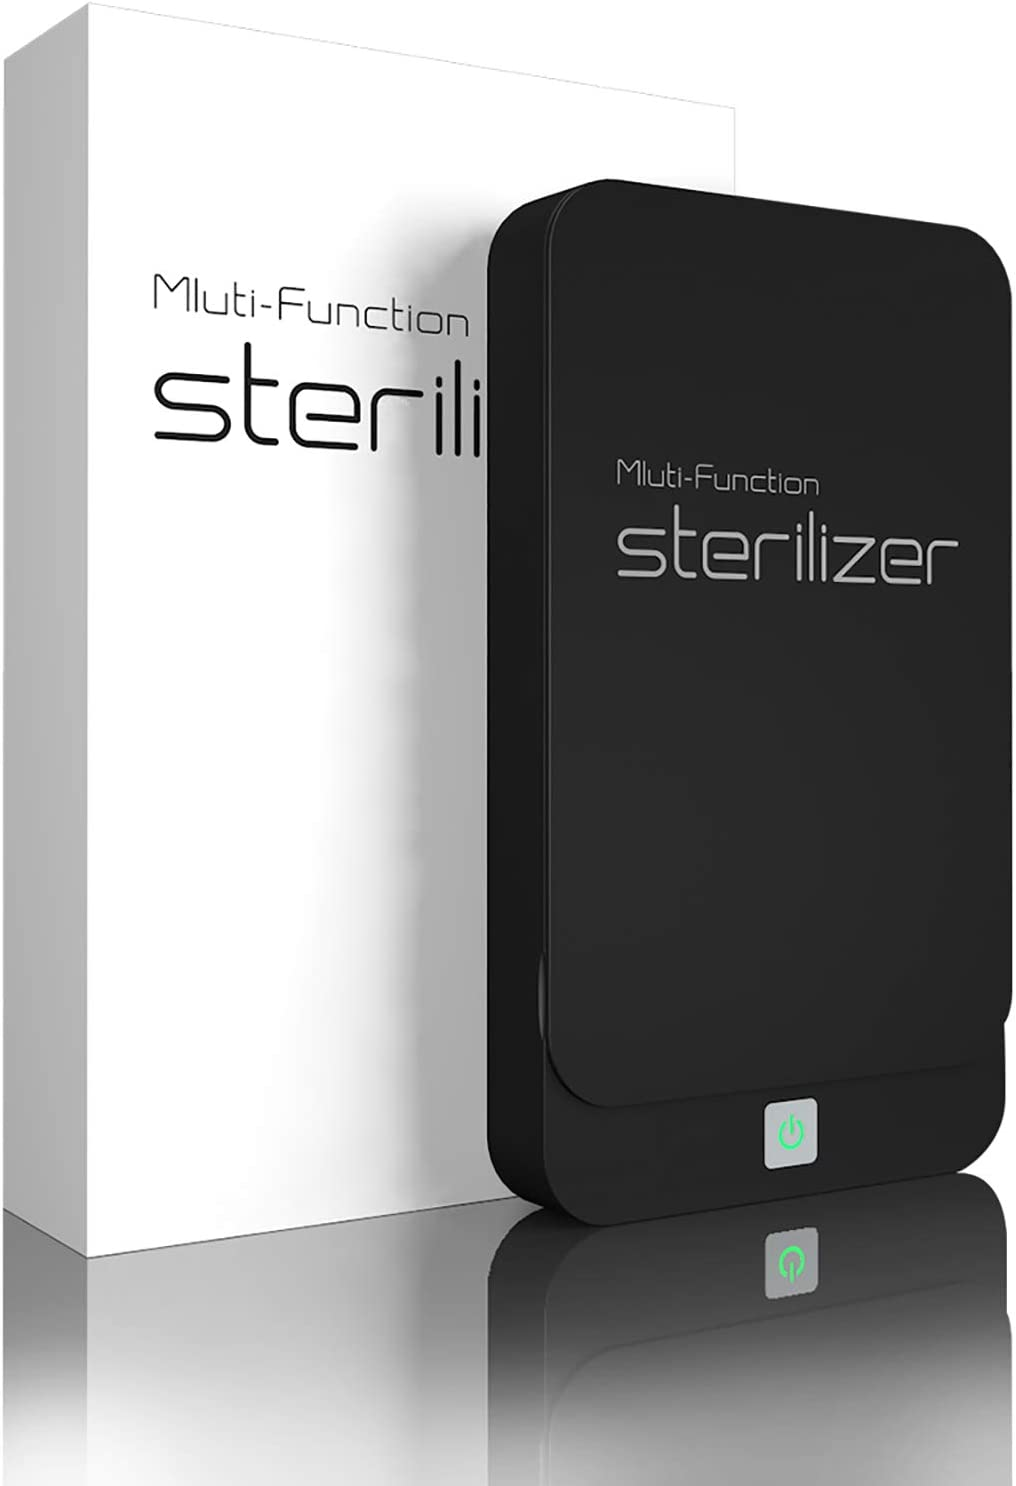 Portable UV Cell Phone Sanitizer with USB Charger – Multi-Use UV Light Disinfection for Smartphone iPhone 6 6s 7s Plus Toothbrush Watches Jewelry – Aromatherapy Hub UV Sterilizer Cleaner Case (Black)